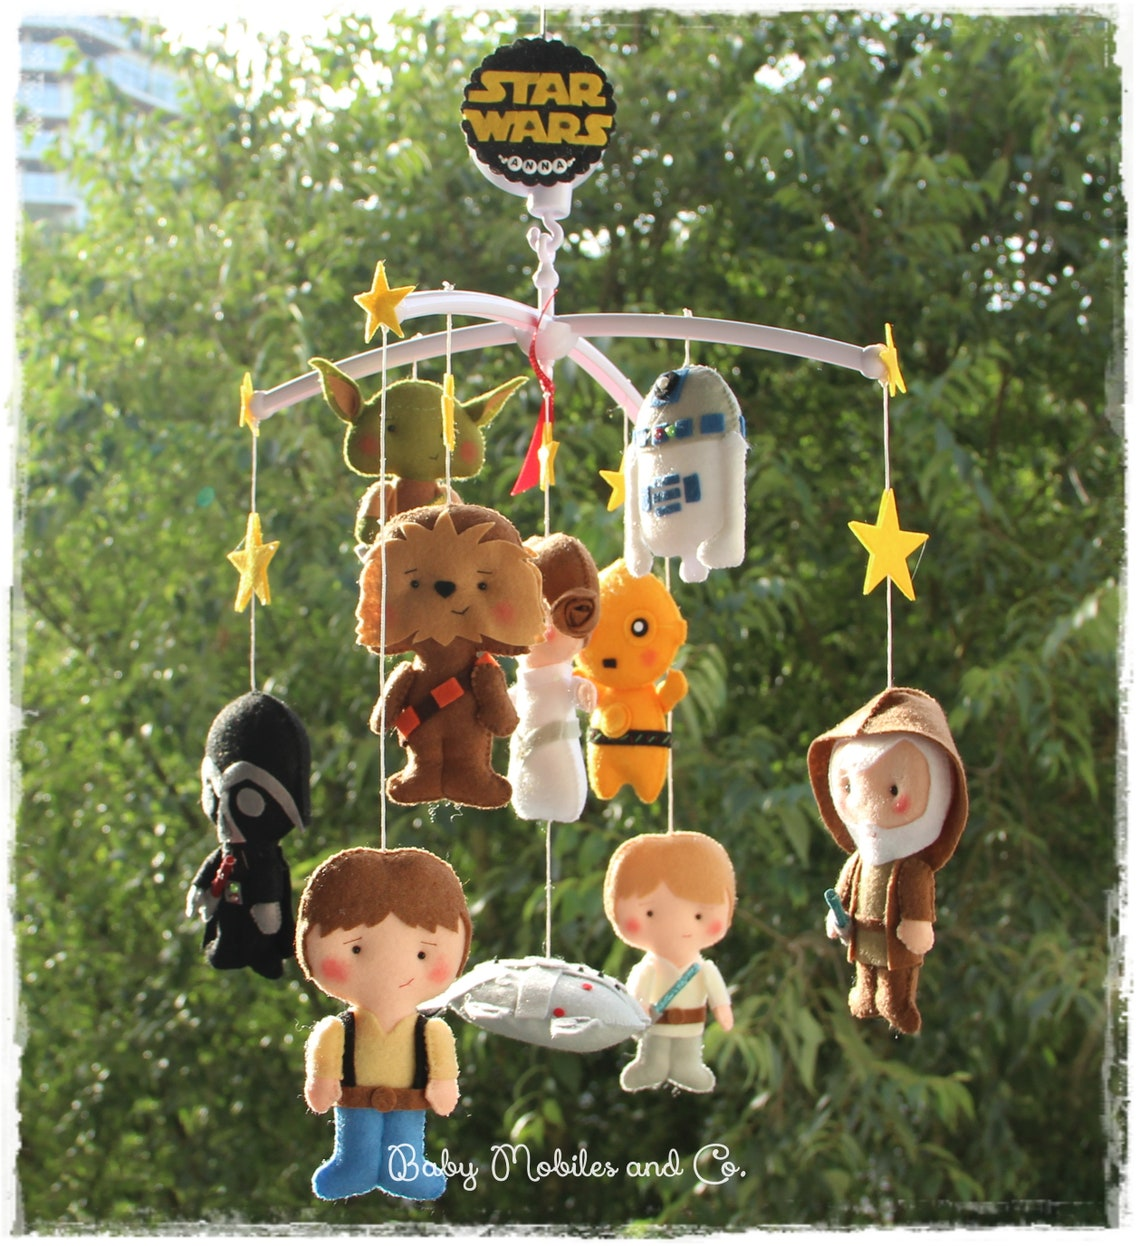 Choose your Star Wars Characters Baby Felt Mobile Hanging Mobile Princess Leia BB-8 Master Yoda Luke Skywalker Chewbacca C3PO Baby Force